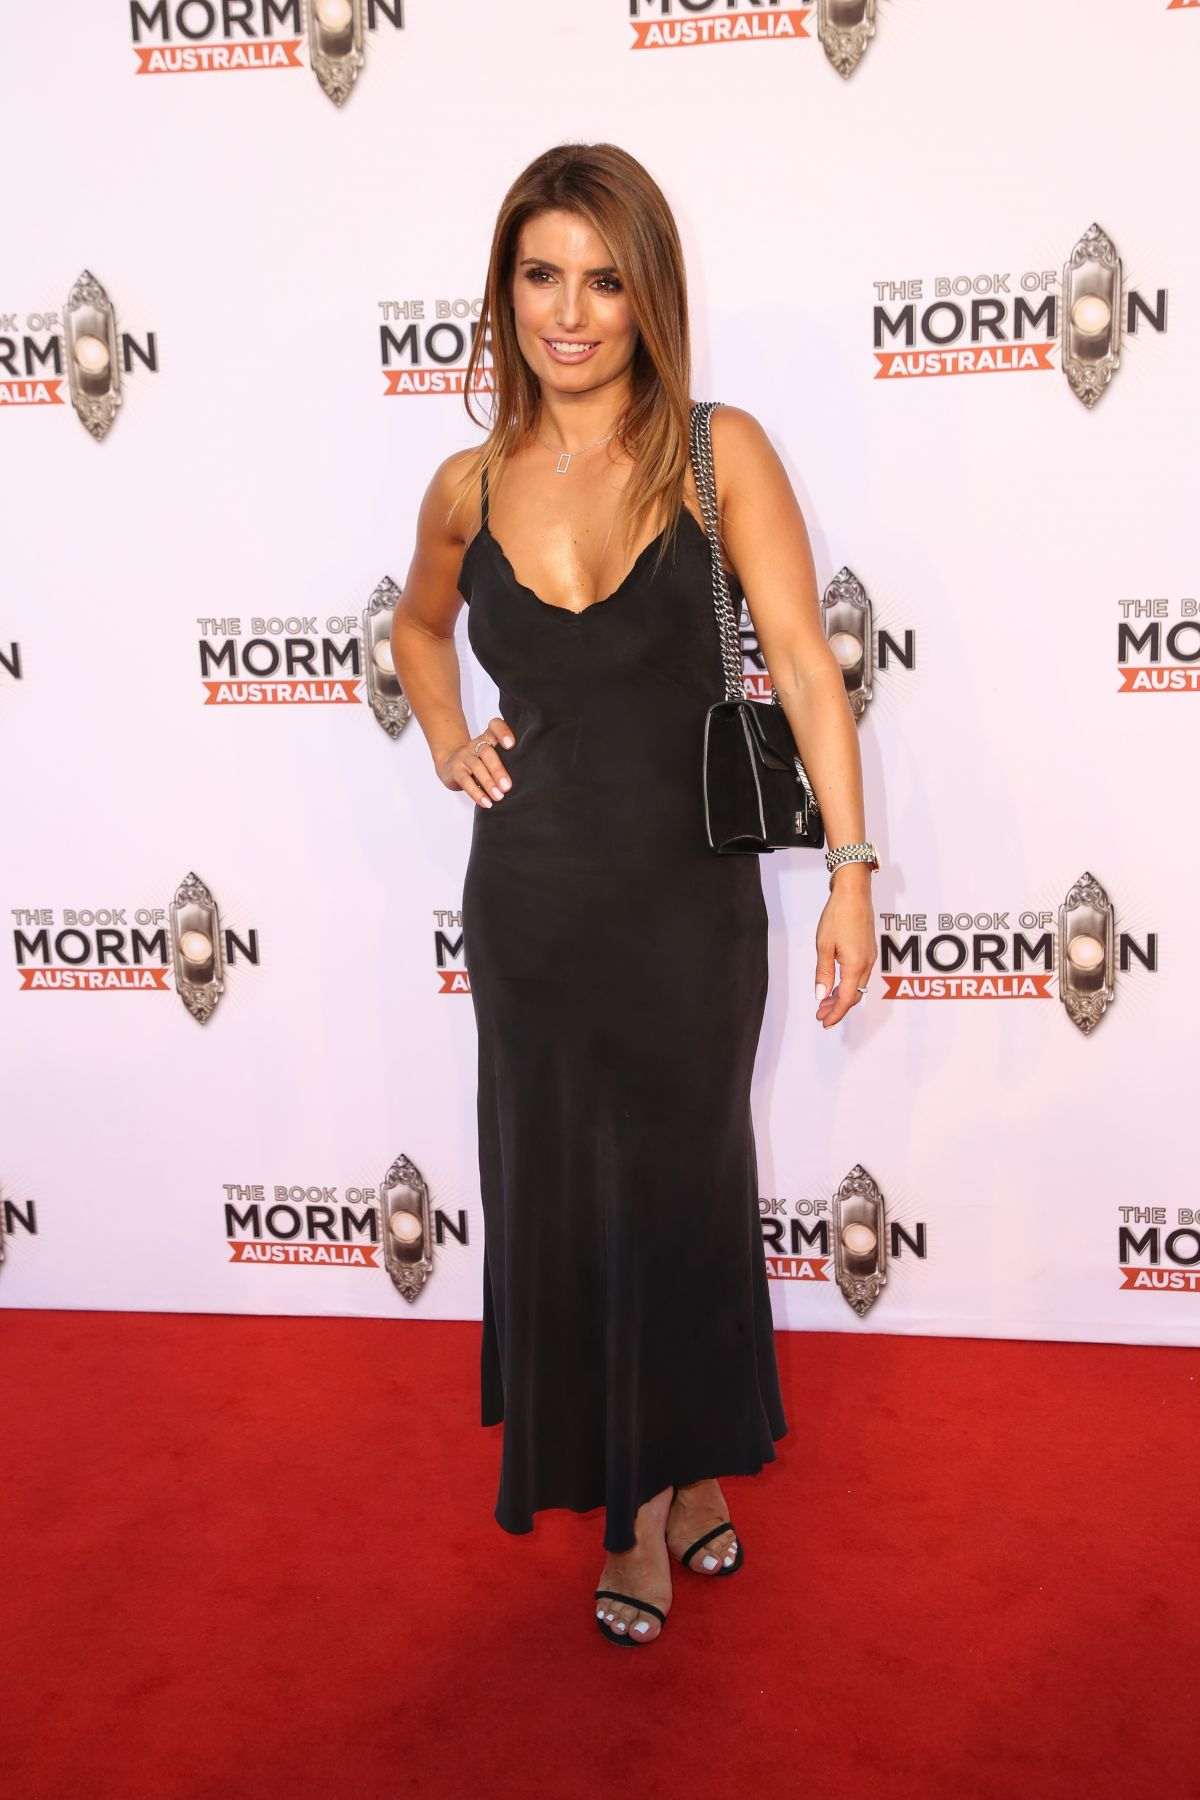 ADA NICODEMOU at The Book of Mormon Opening Night in